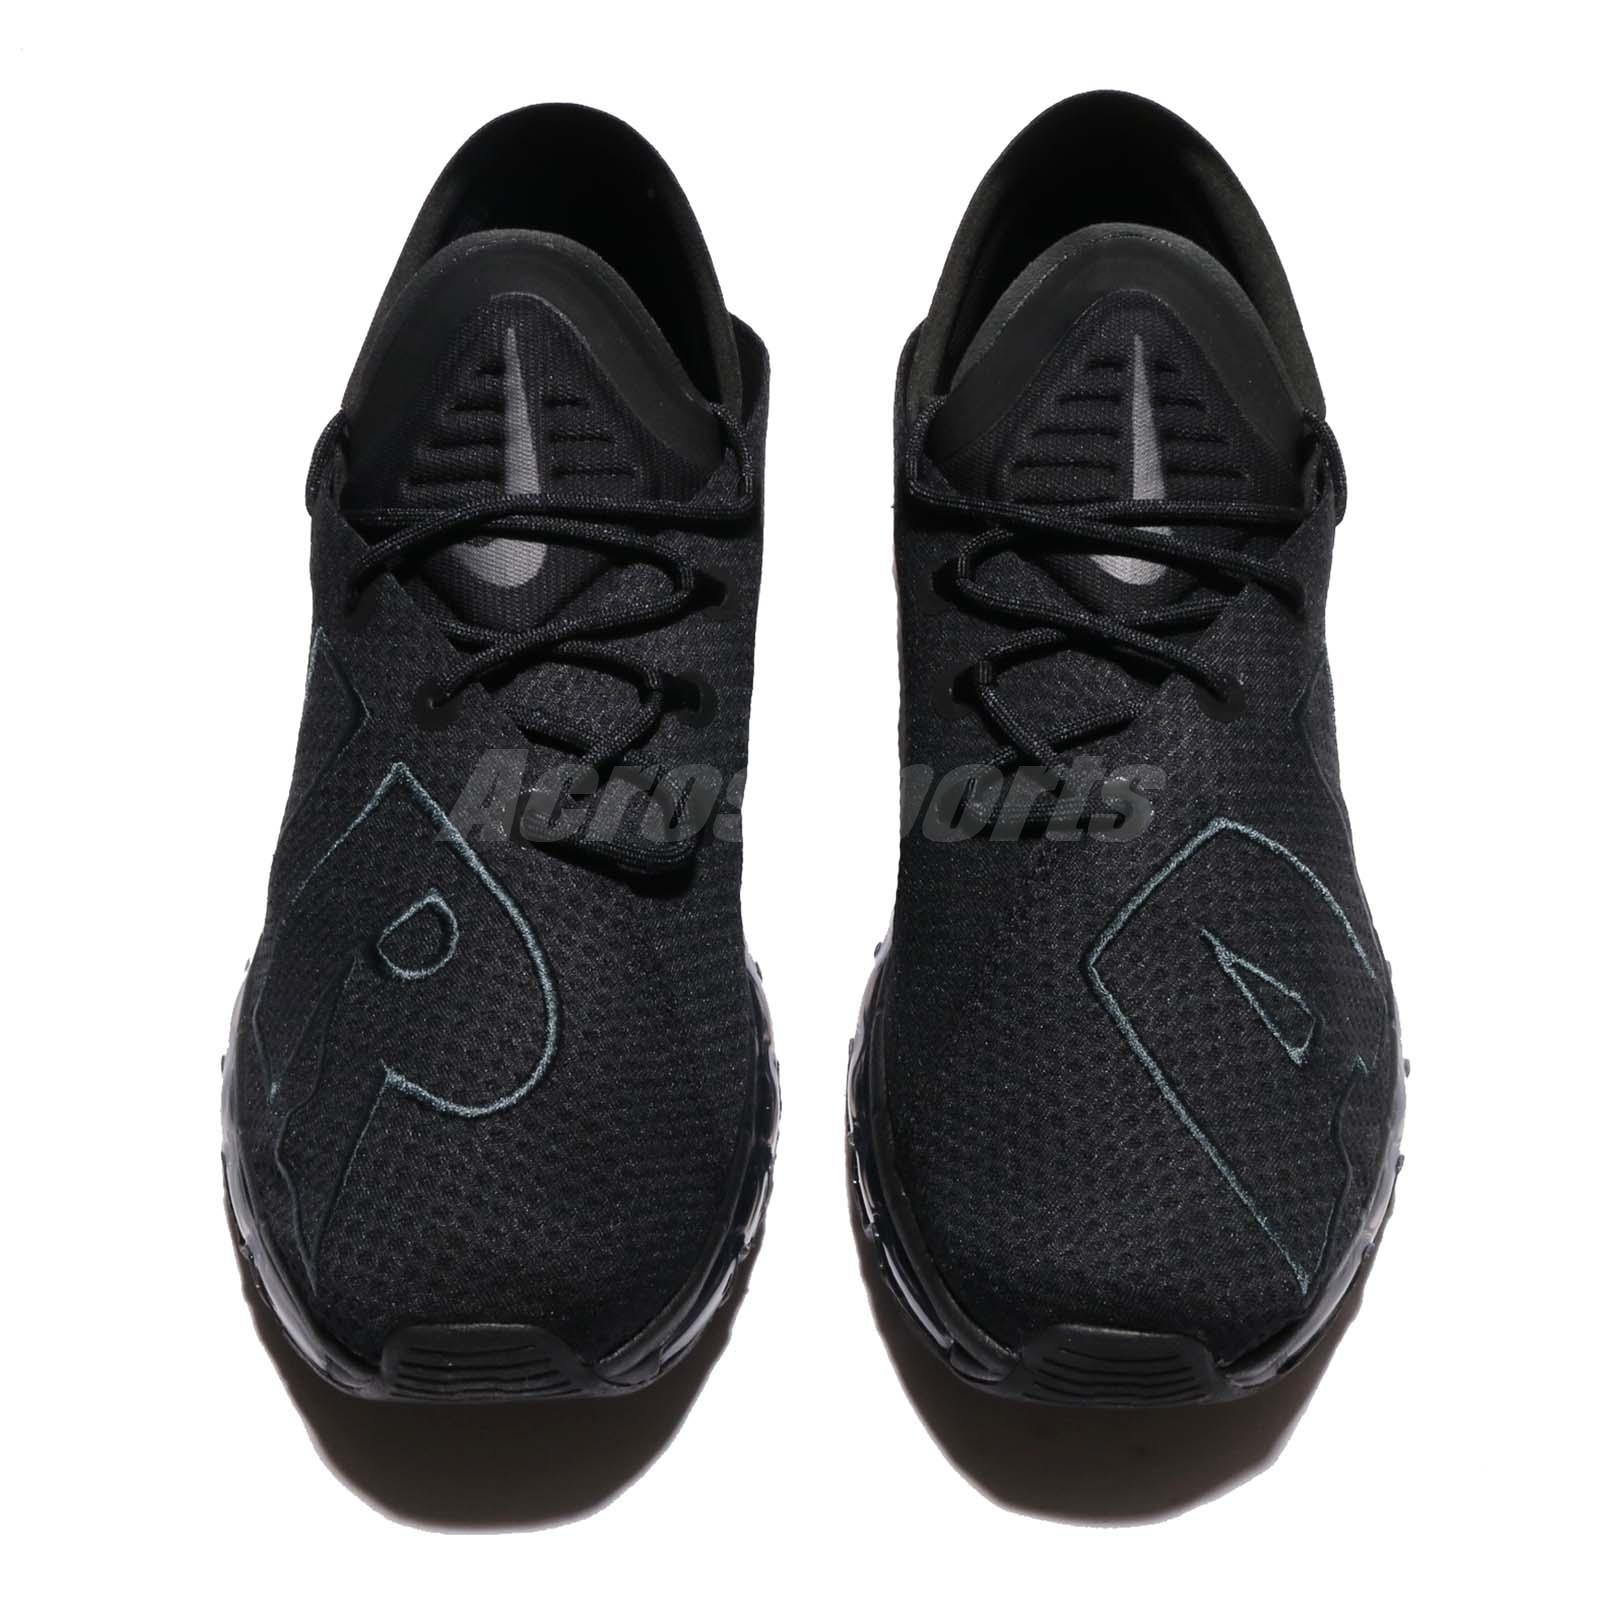 timeless design 08c27 29824 Nike Air Max Flair Black Anthracite More Uptempo Men Running Shoes ...